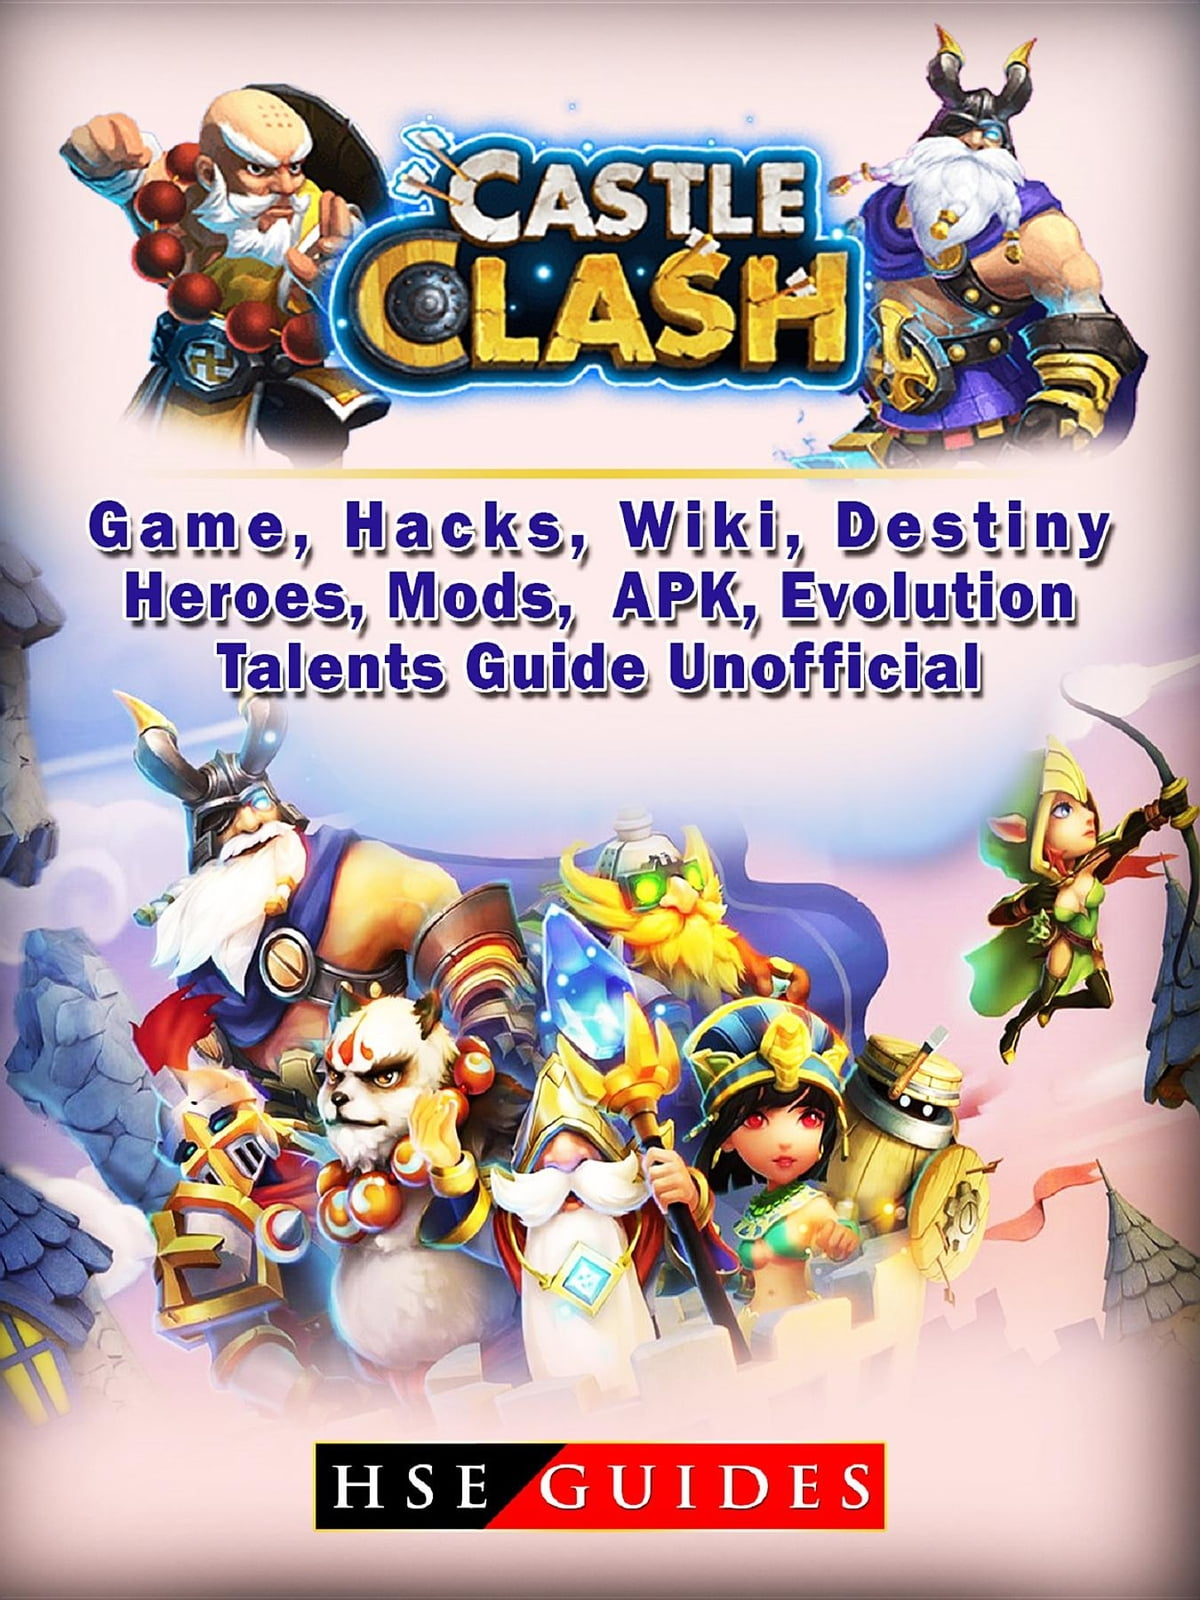 Castle Clash Game, Hacks, Wiki, Destiny, Heroes, Mods, APK, Evolution,  Talents, Guide Unofficial ebook by HSE Guides - Rakuten Kobo